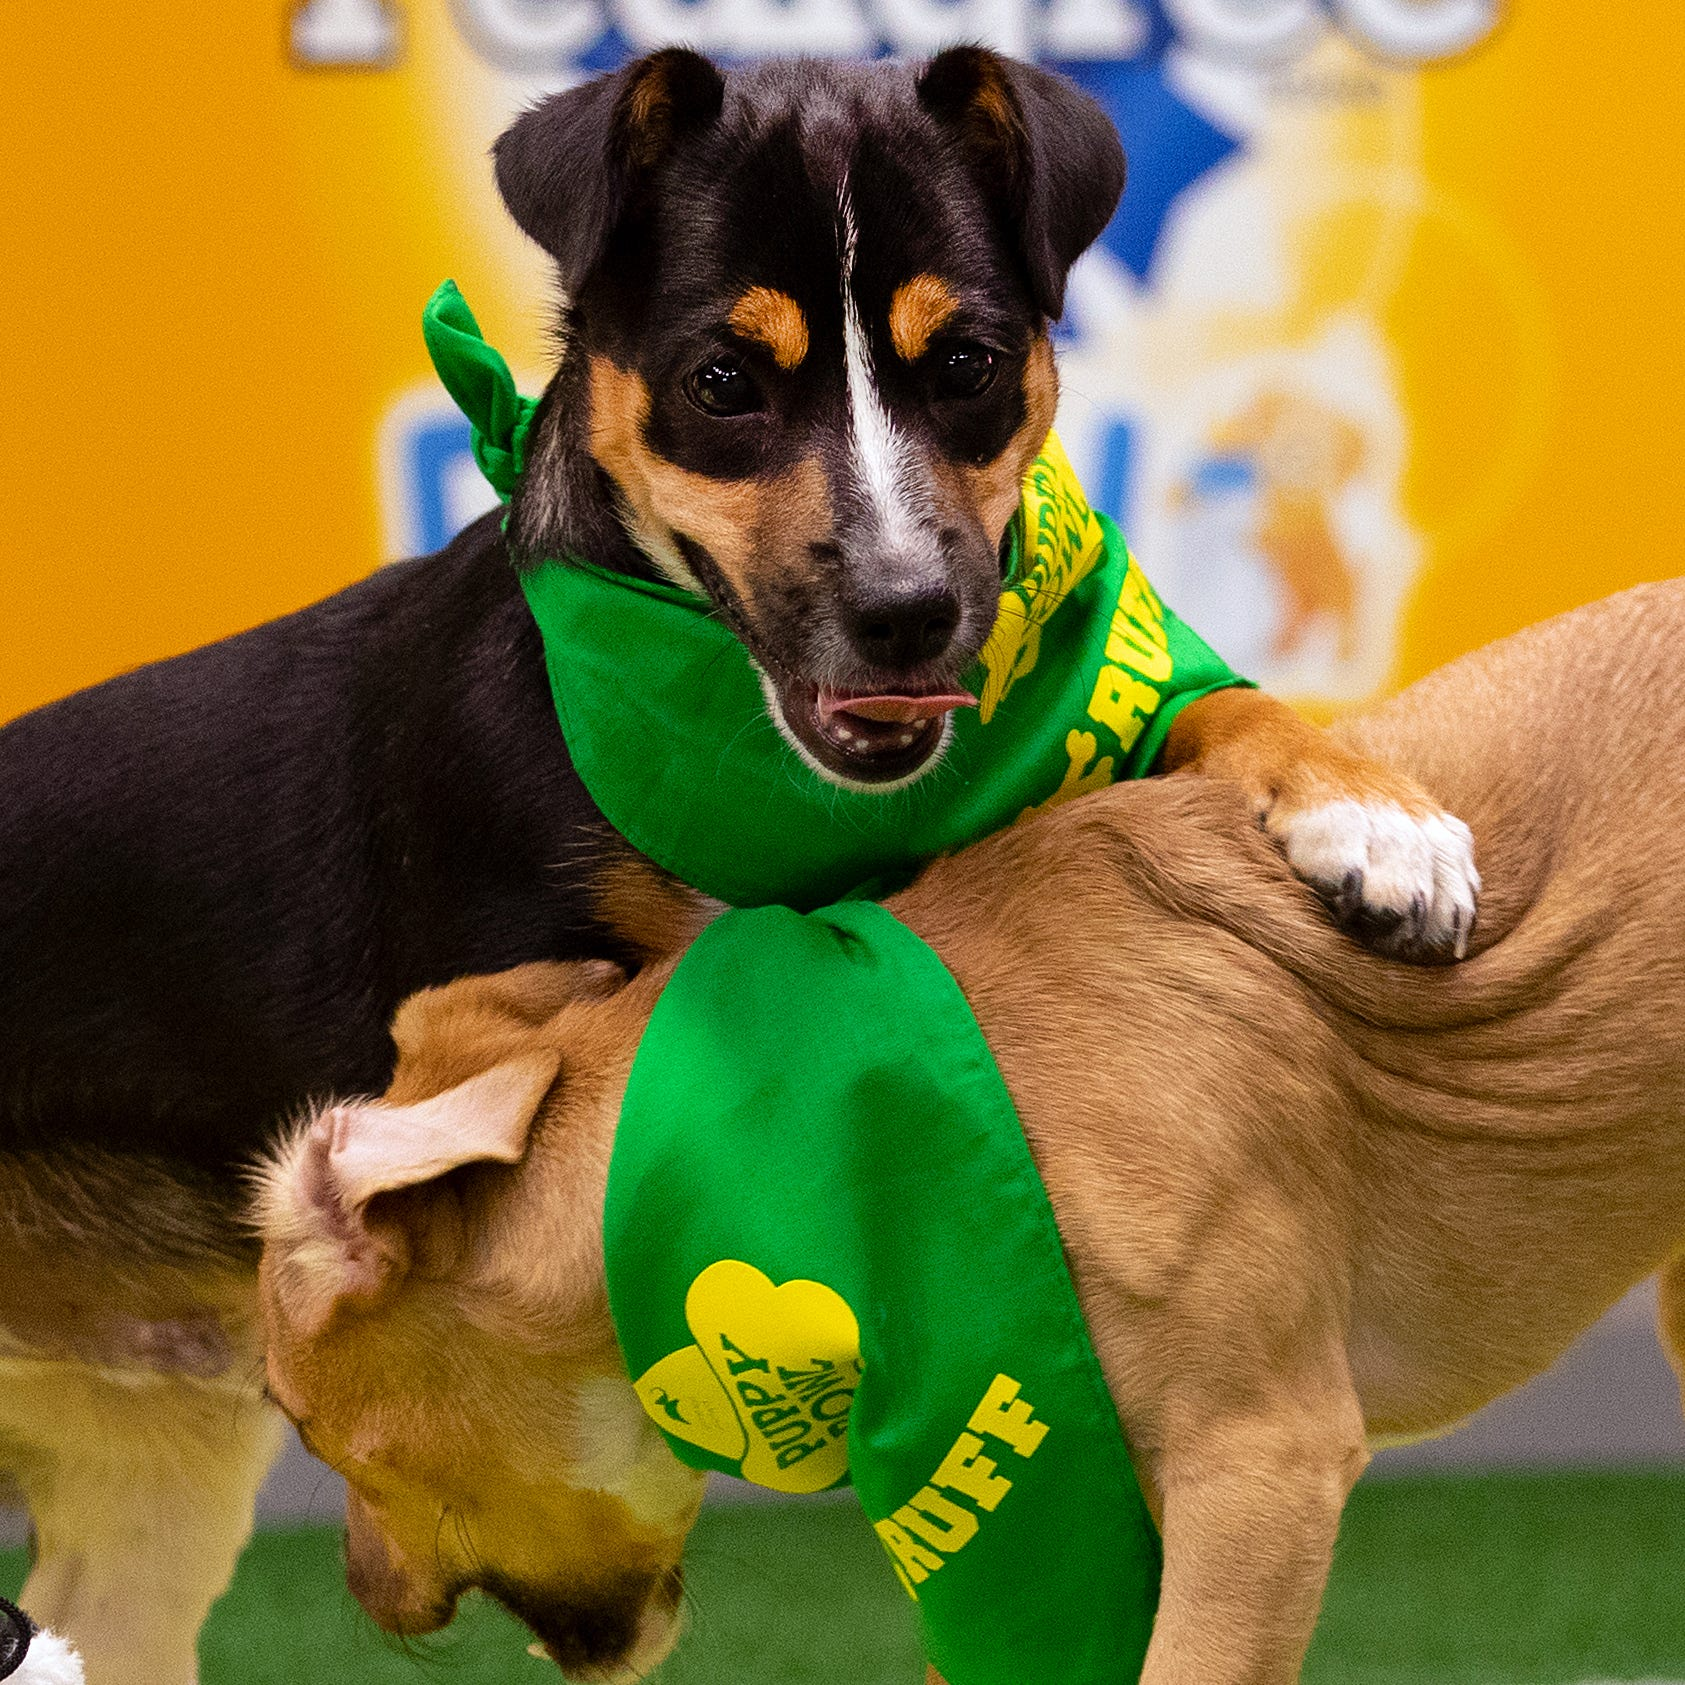 """Teams """"Ruff"""" and """"Fluff"""" will go head to head when the 15th annual """"Puppy Bowl"""" airs on Animal Planet this Super Bowl Sunday."""